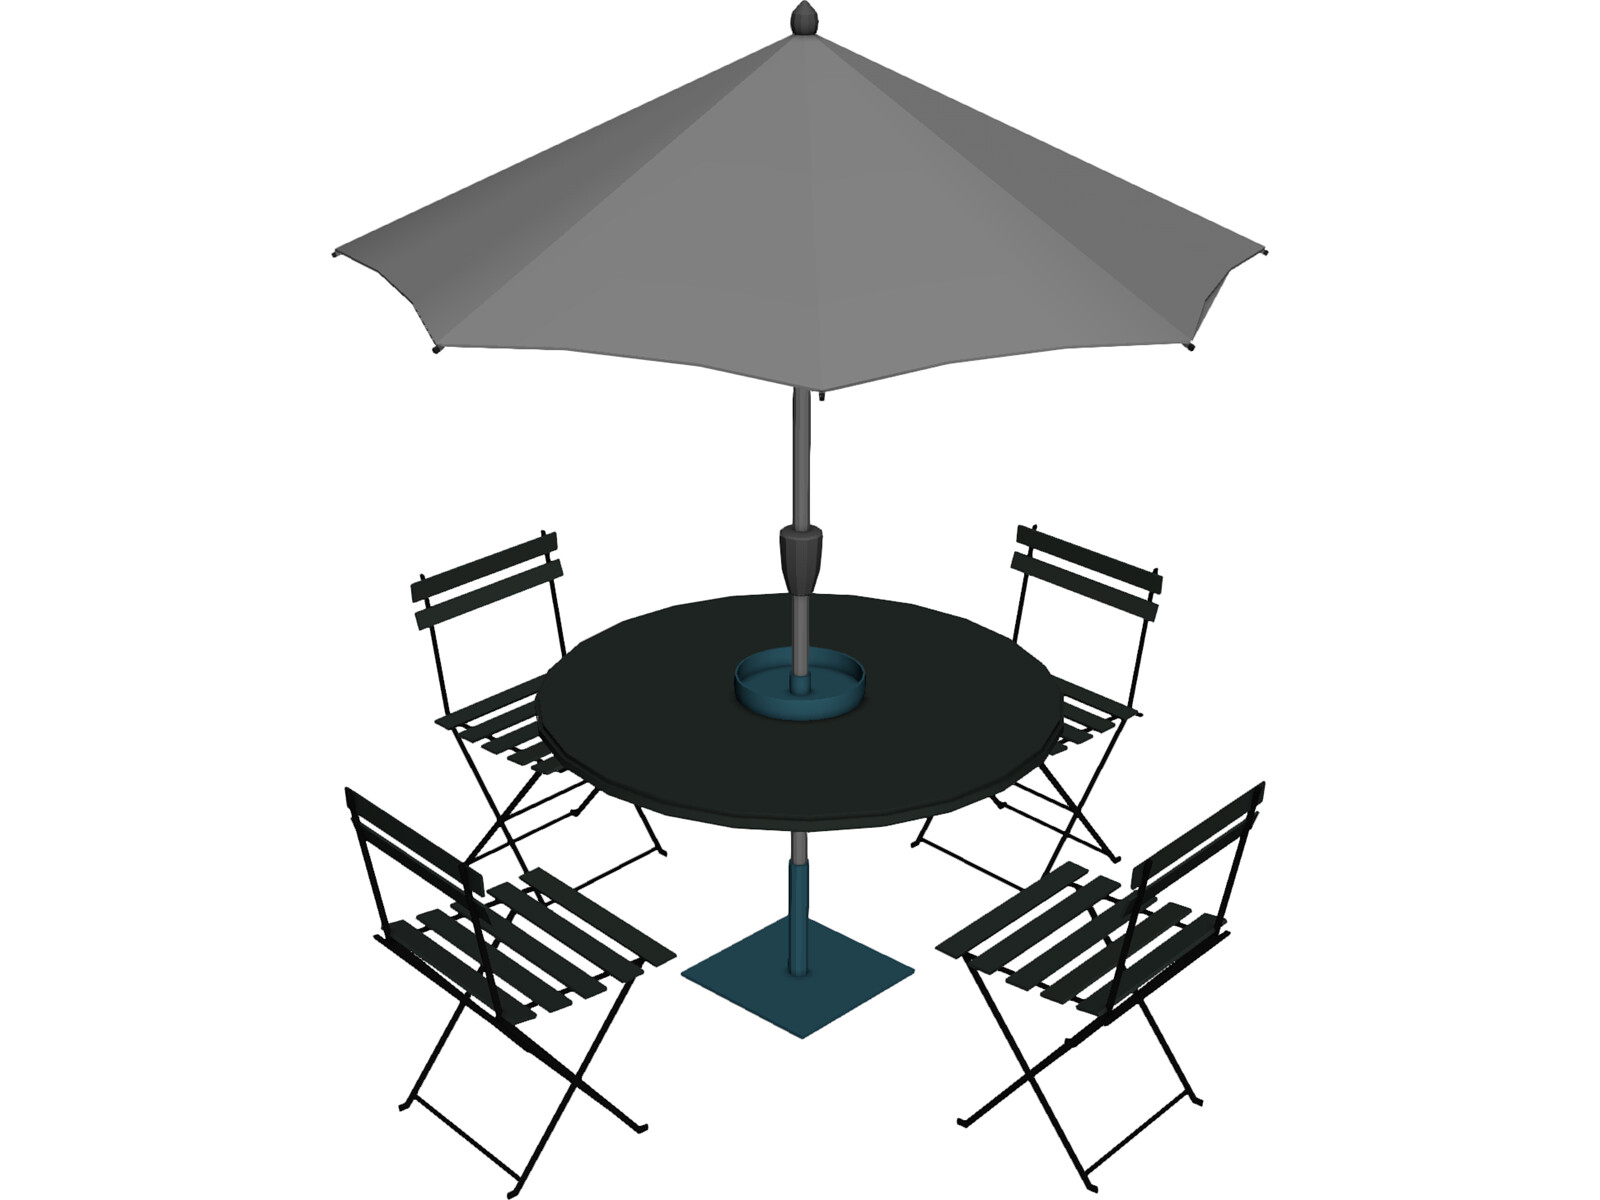 Table And Chairs With Beach Umbrella 3D Model